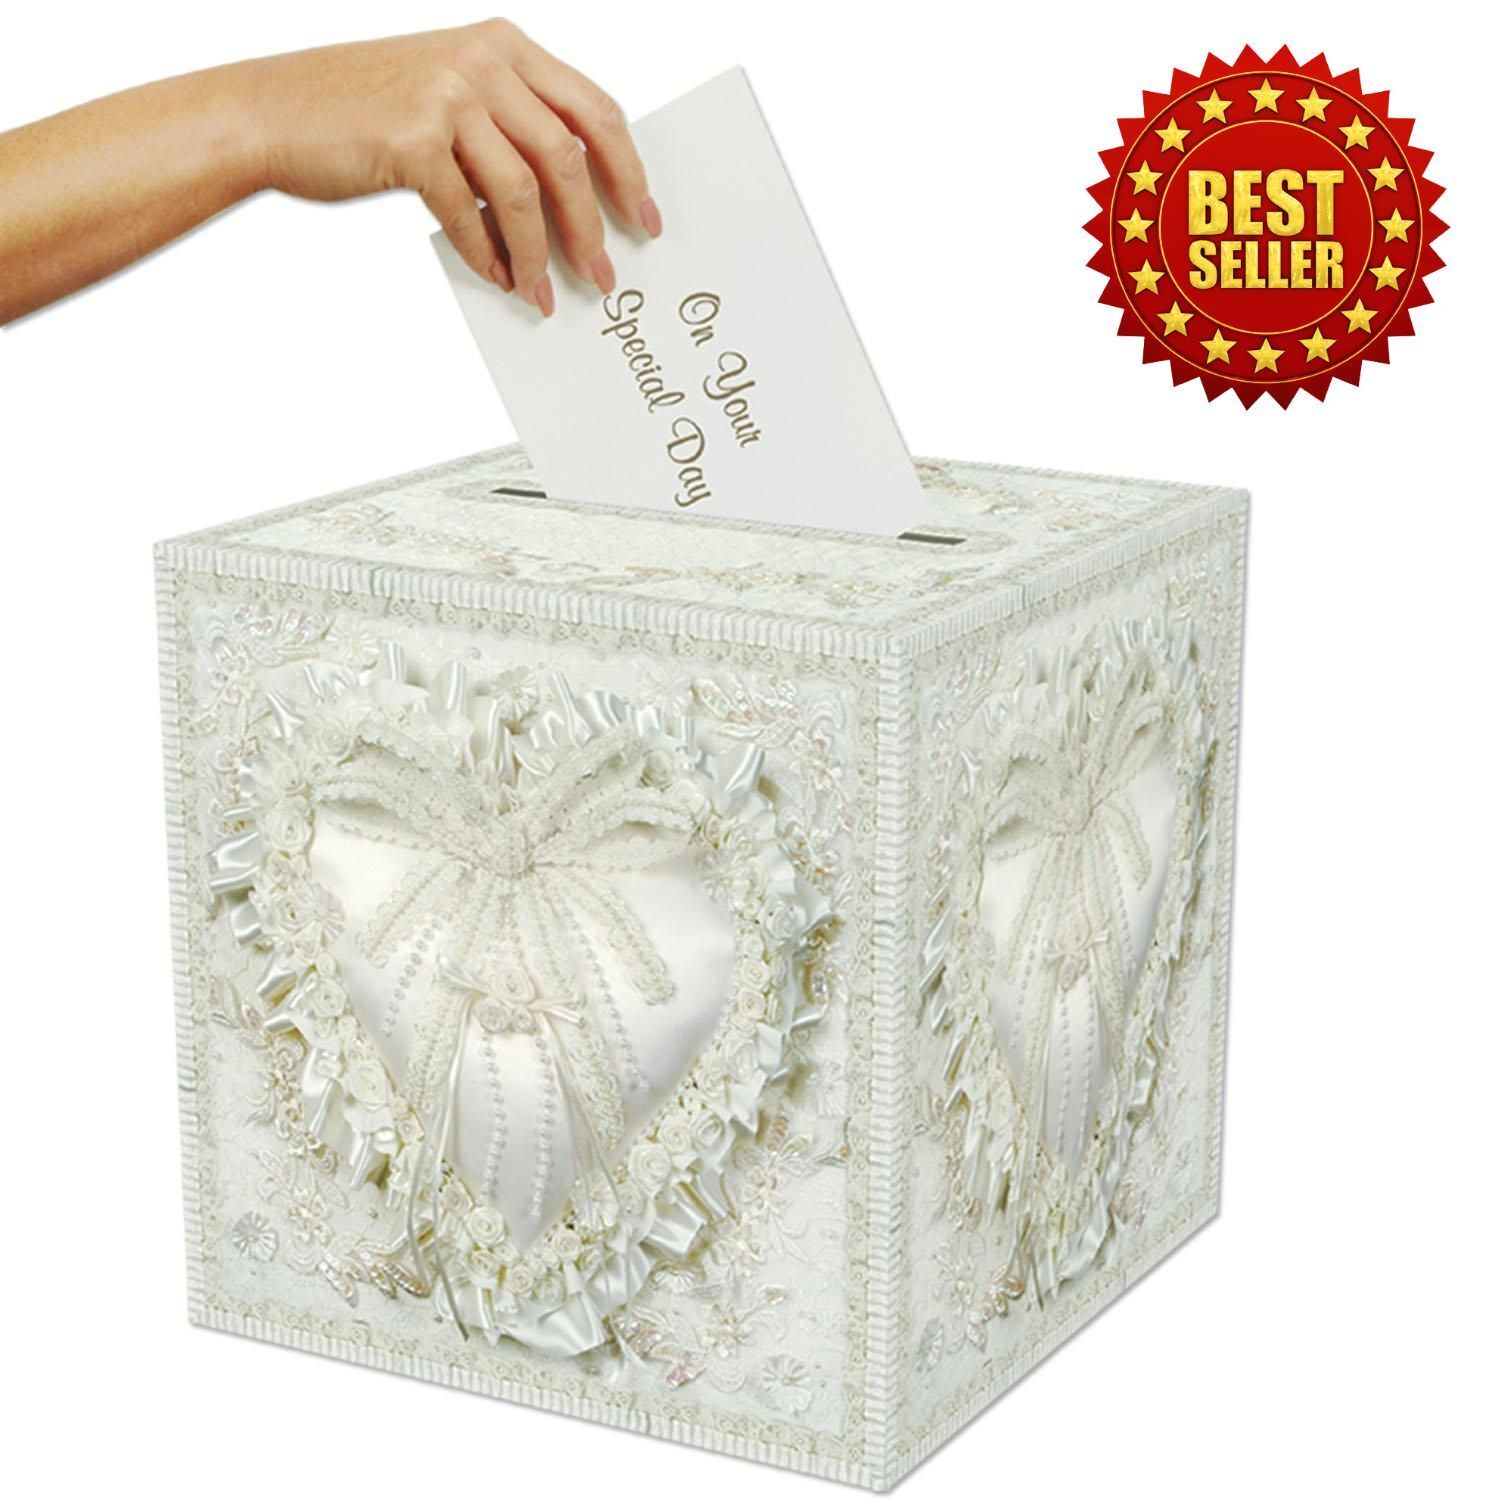 Details About Wedding Card Box Money Holder Party Reception Gift Envelope Collections Boxes